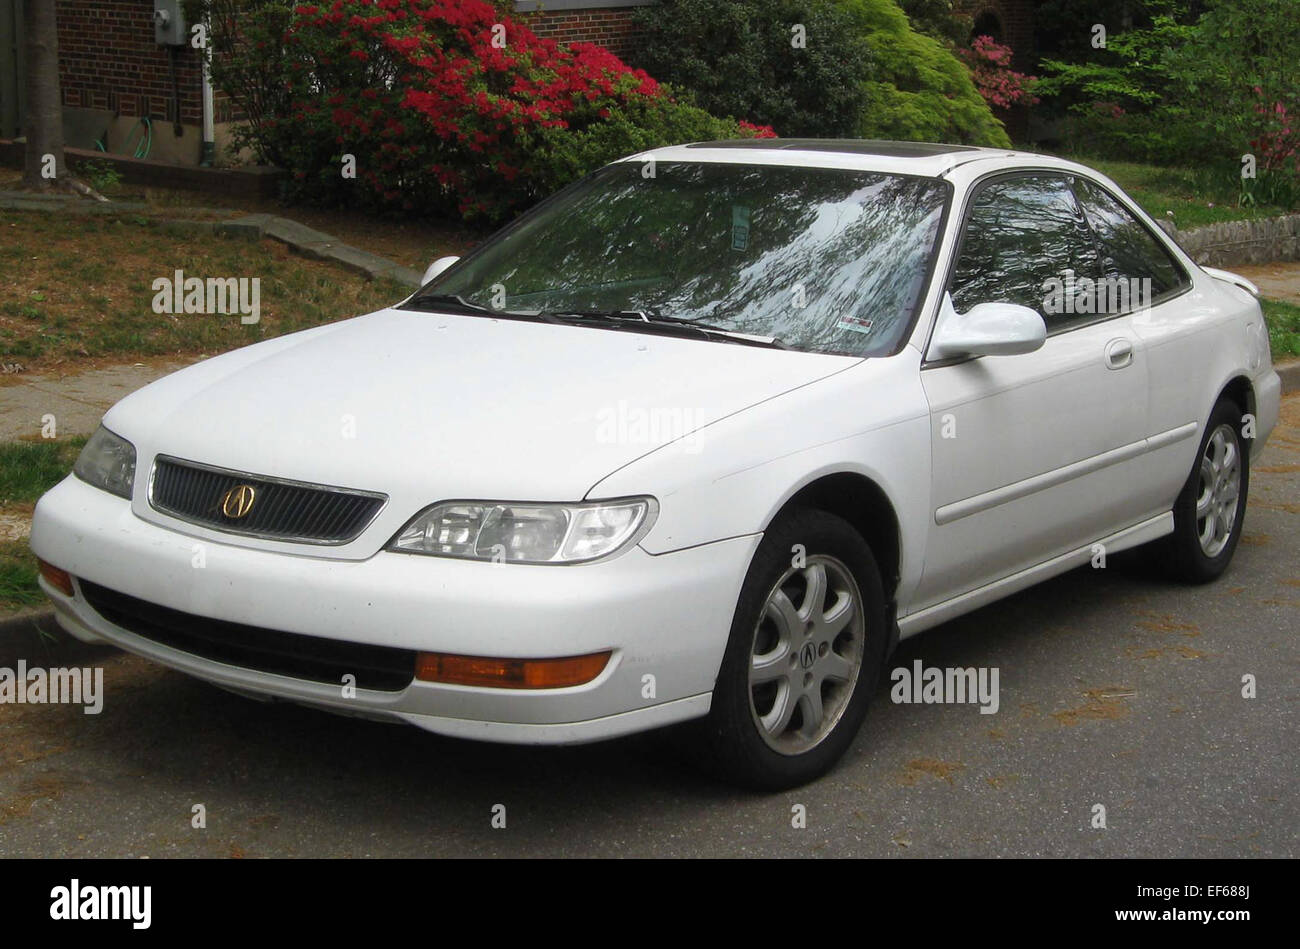 1998 1999 Acura CL    04 11 2012 2 - Stock Image